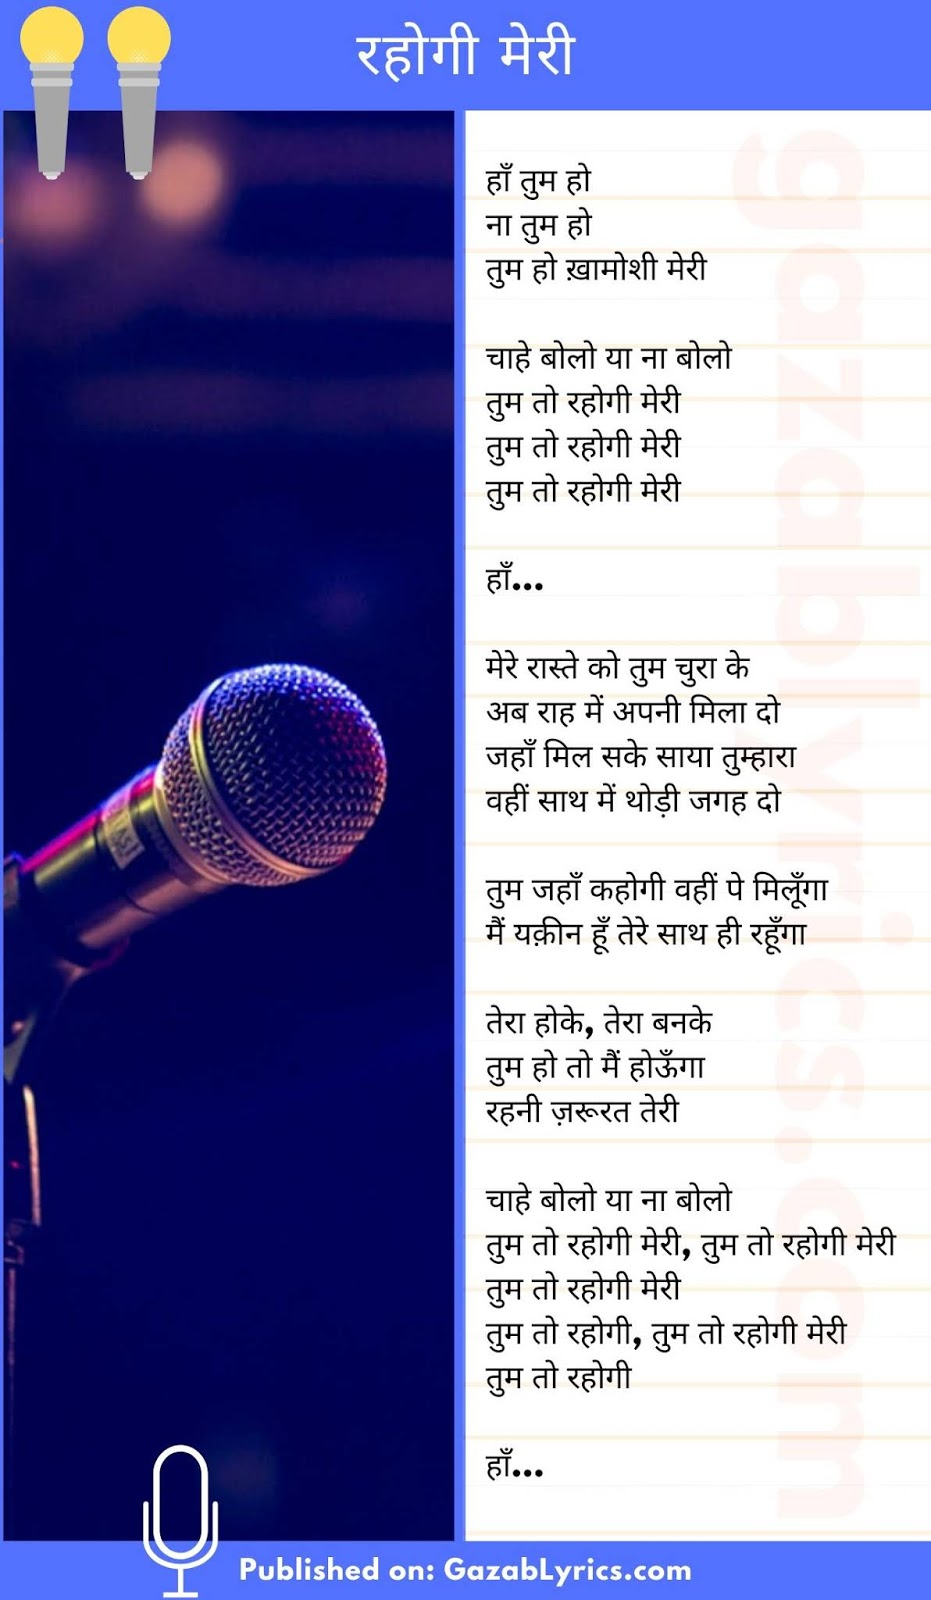 Rahogi Meri song lyrics image